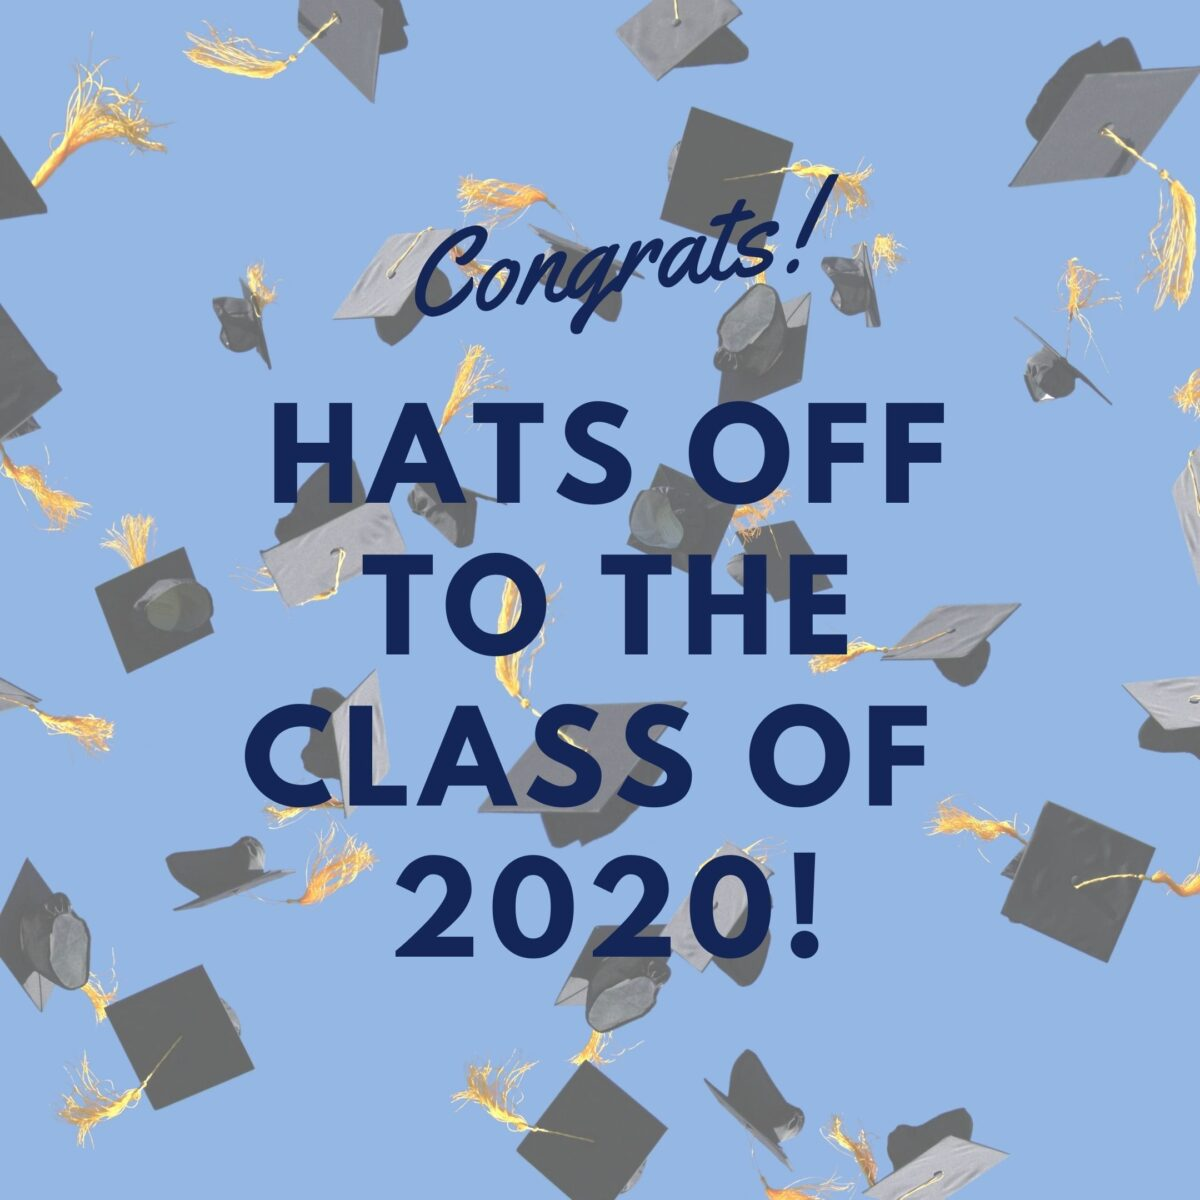 Hats Off To the Class of 2020